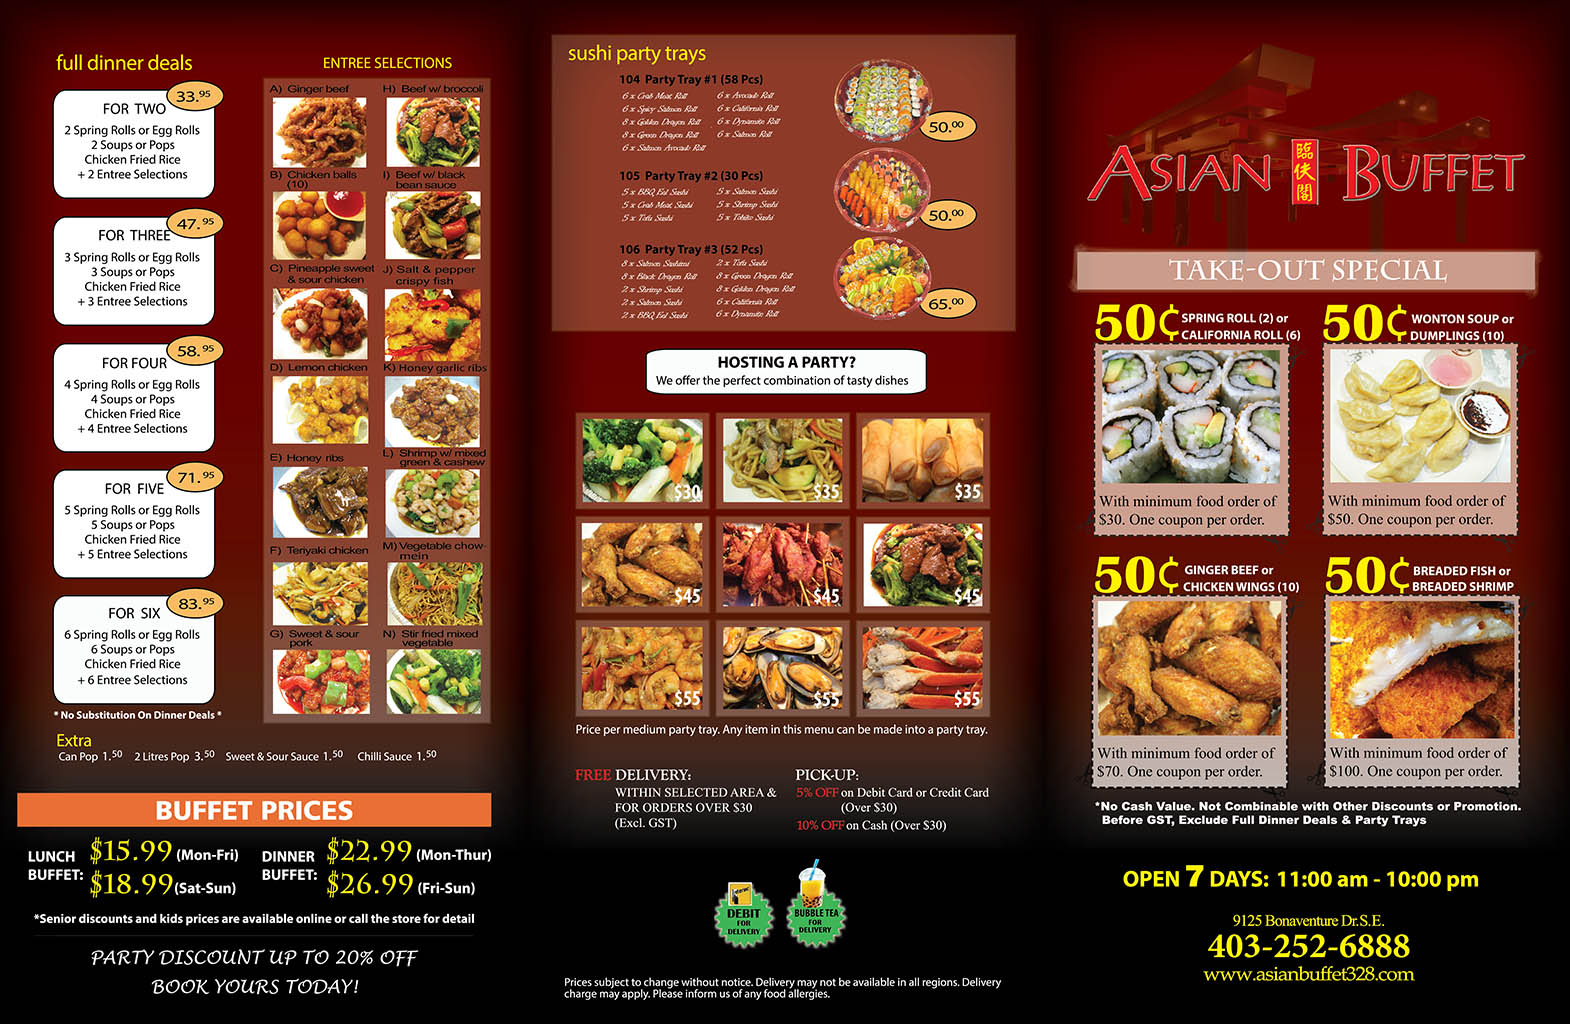 asian buffet take out delivery menu rh asianbuffet328 com asian buffet price and times in racine asian buffet prices rexdale